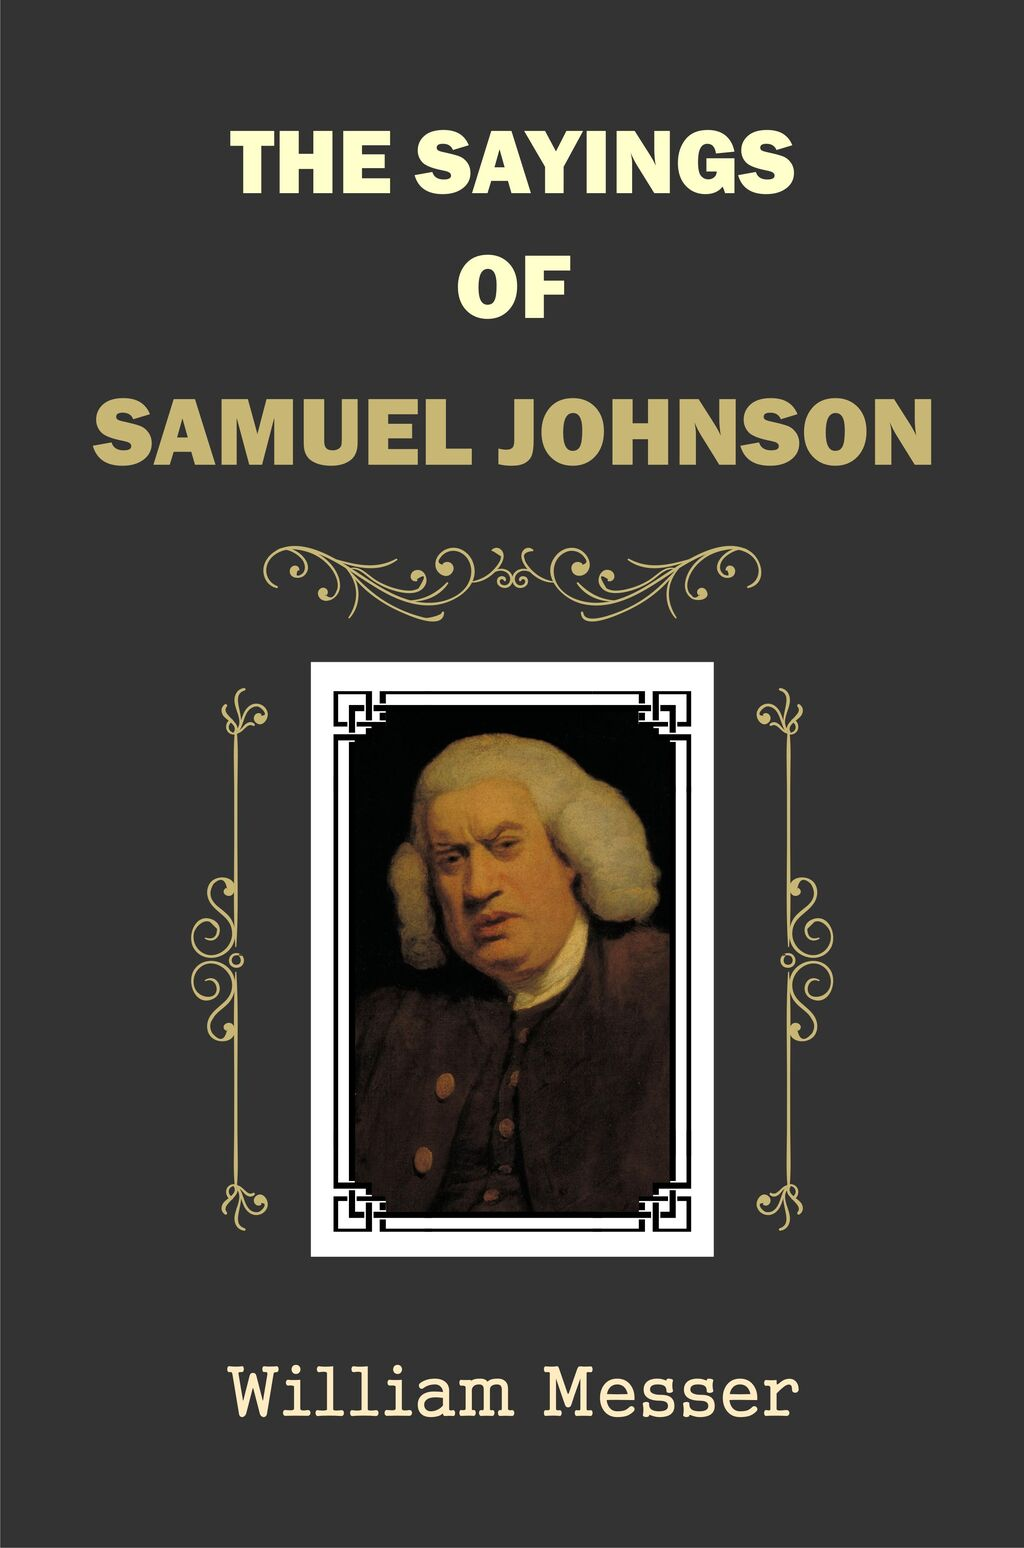 The Sayings of Samuel Johnson